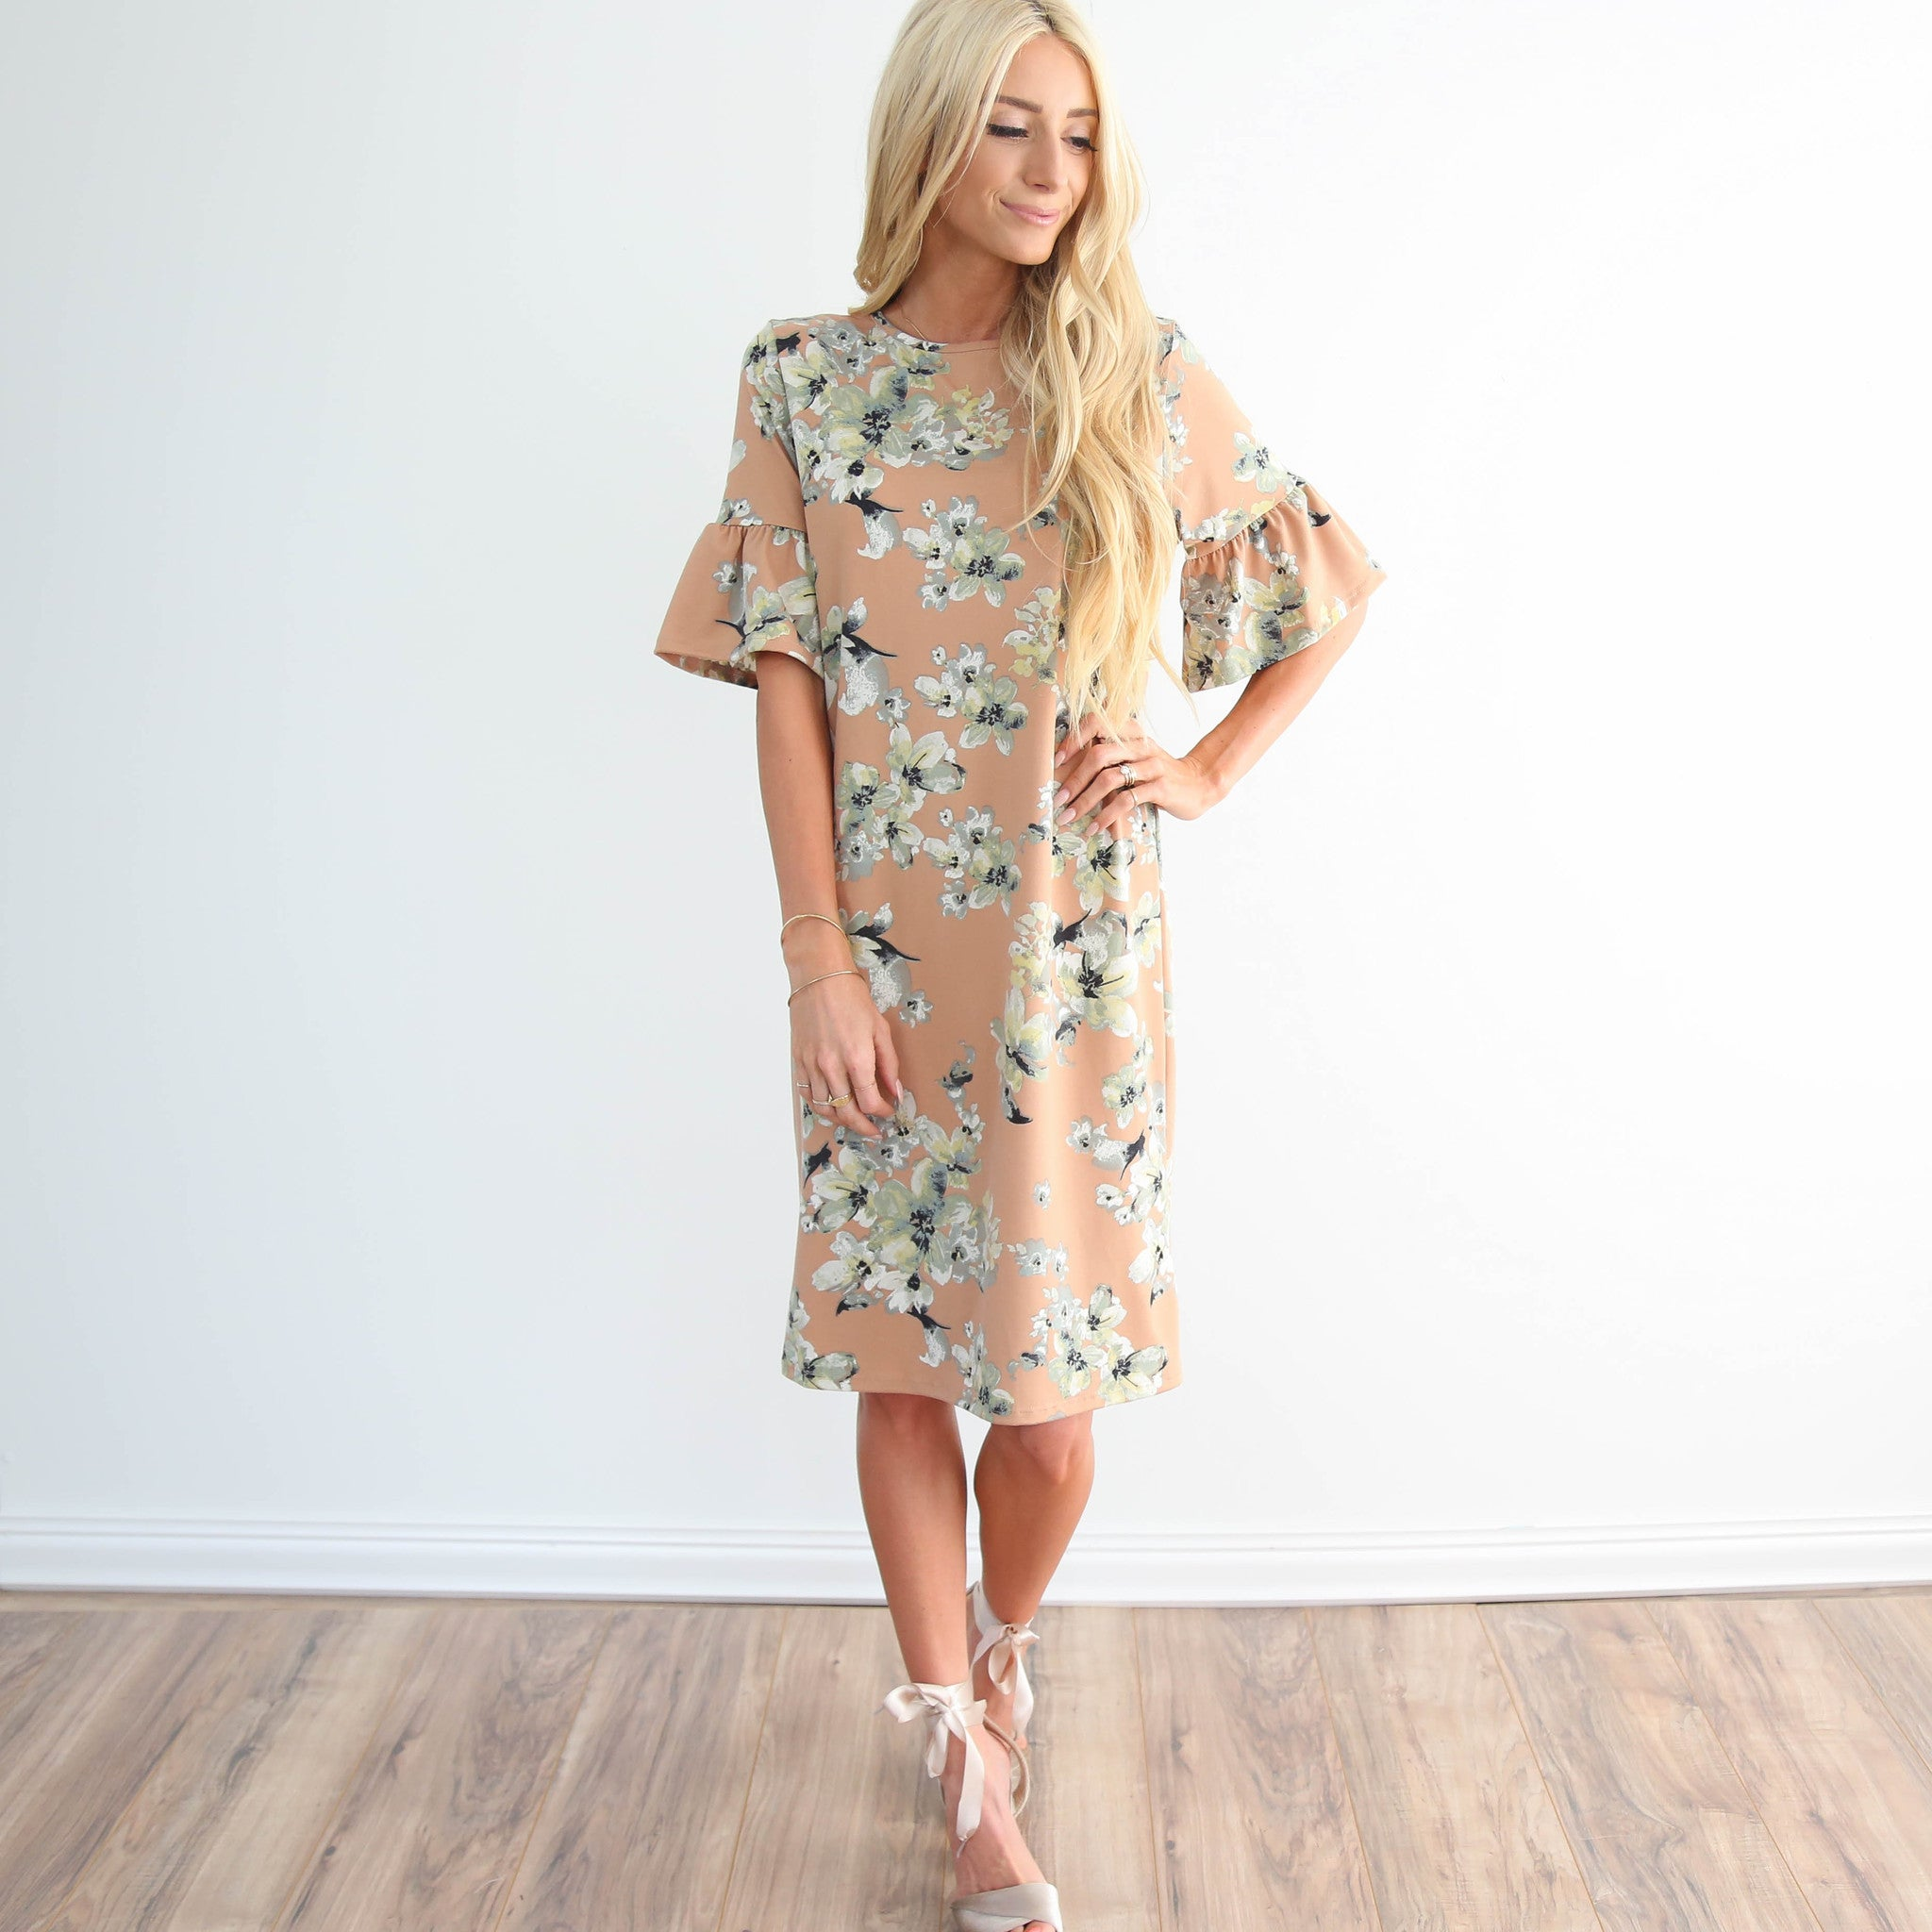 S & Co. Maryana Dress